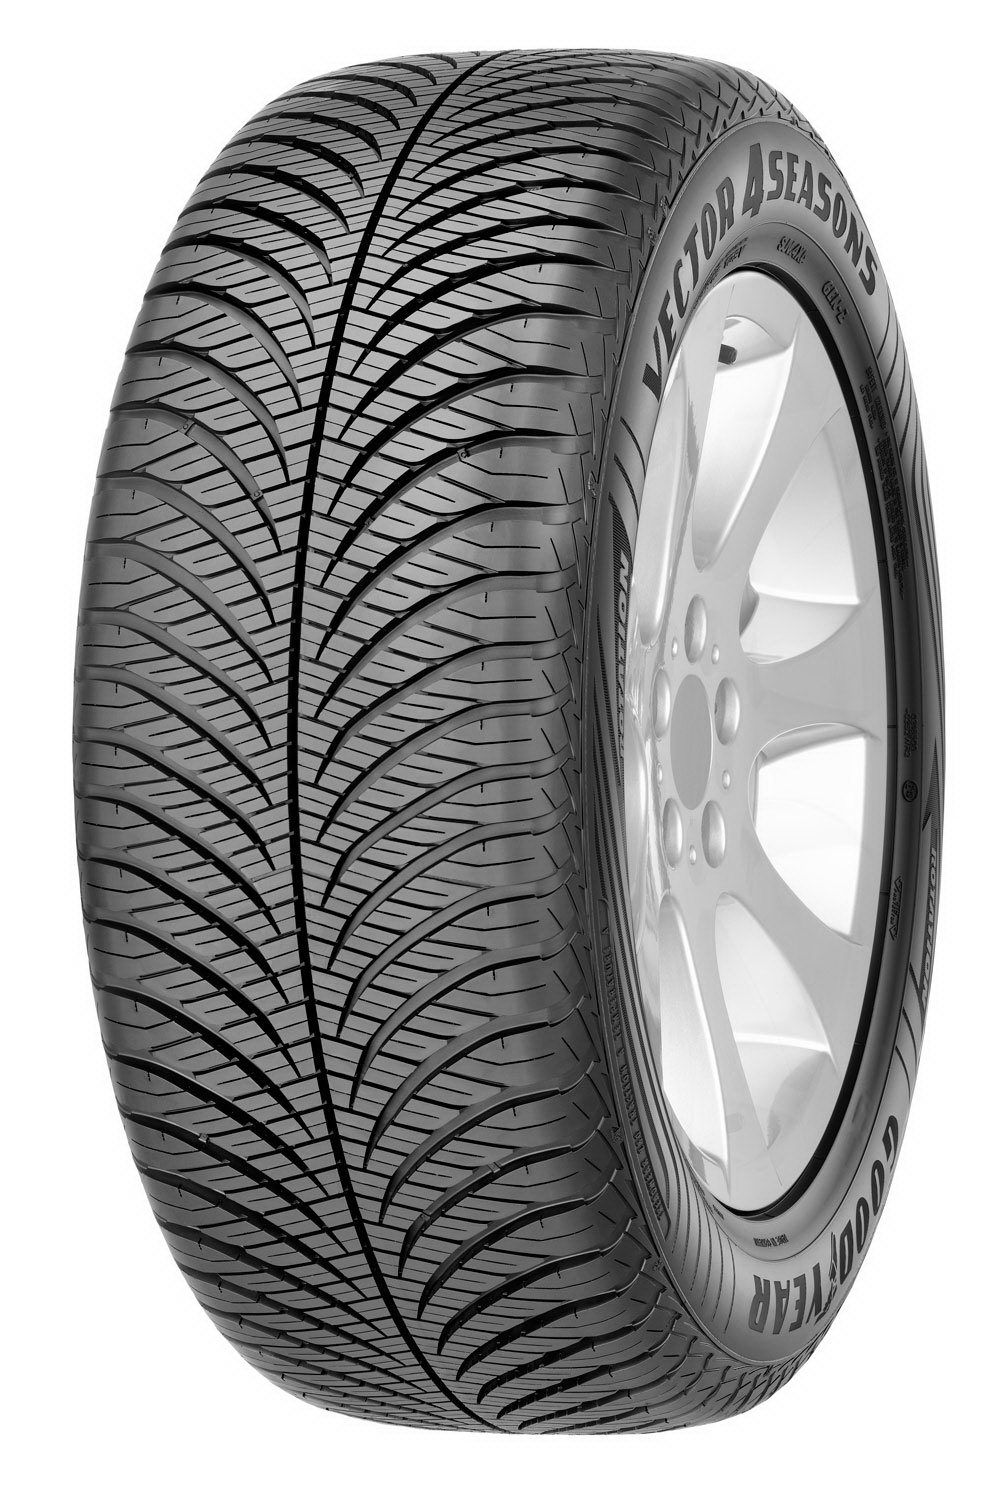 Anvelope all seasons GOODYEAR Vector 4Seasons G2 185/65 R14 86H